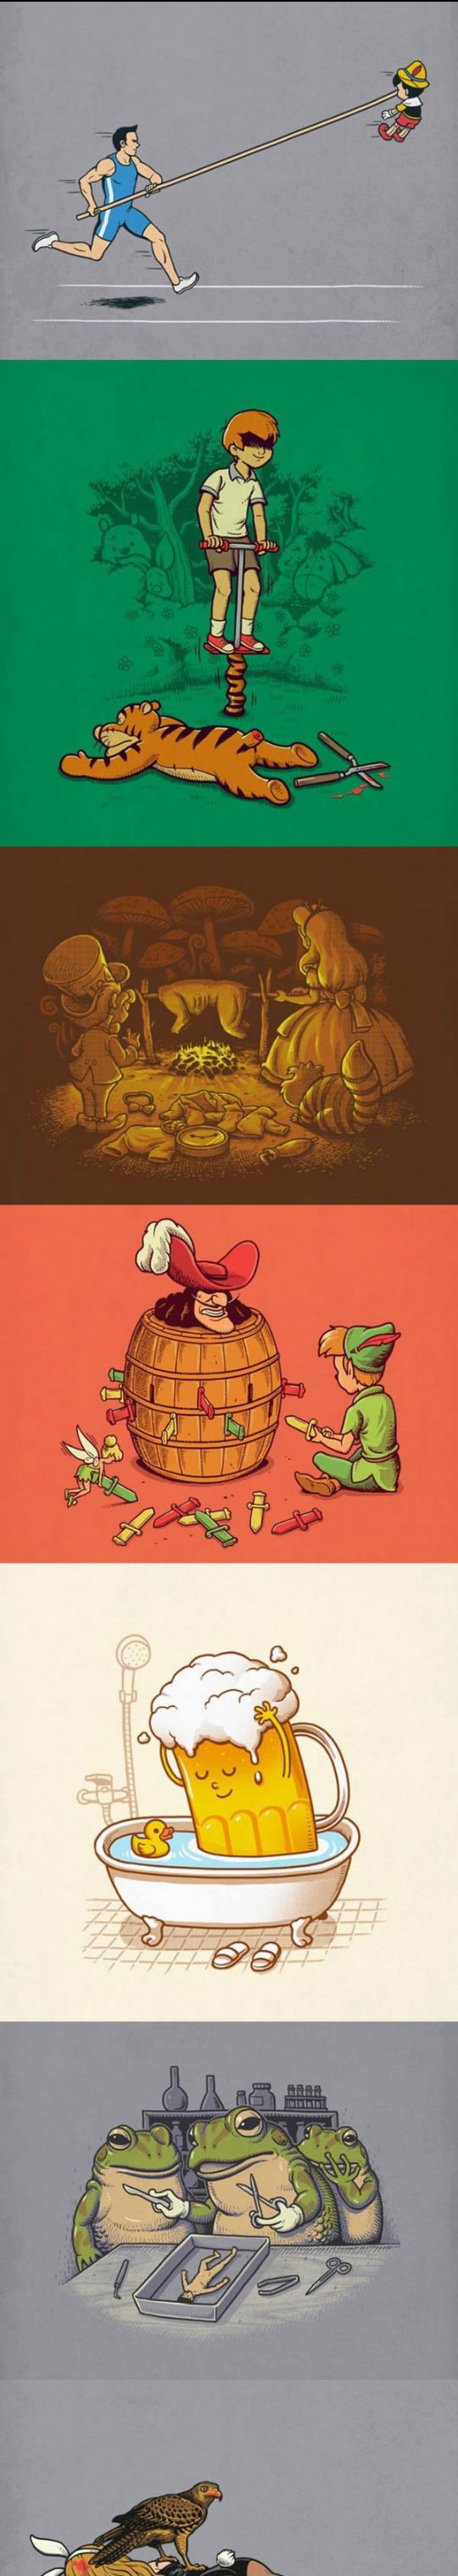 funny-illustrations-Pinocchio-Peter-Pan-Hook